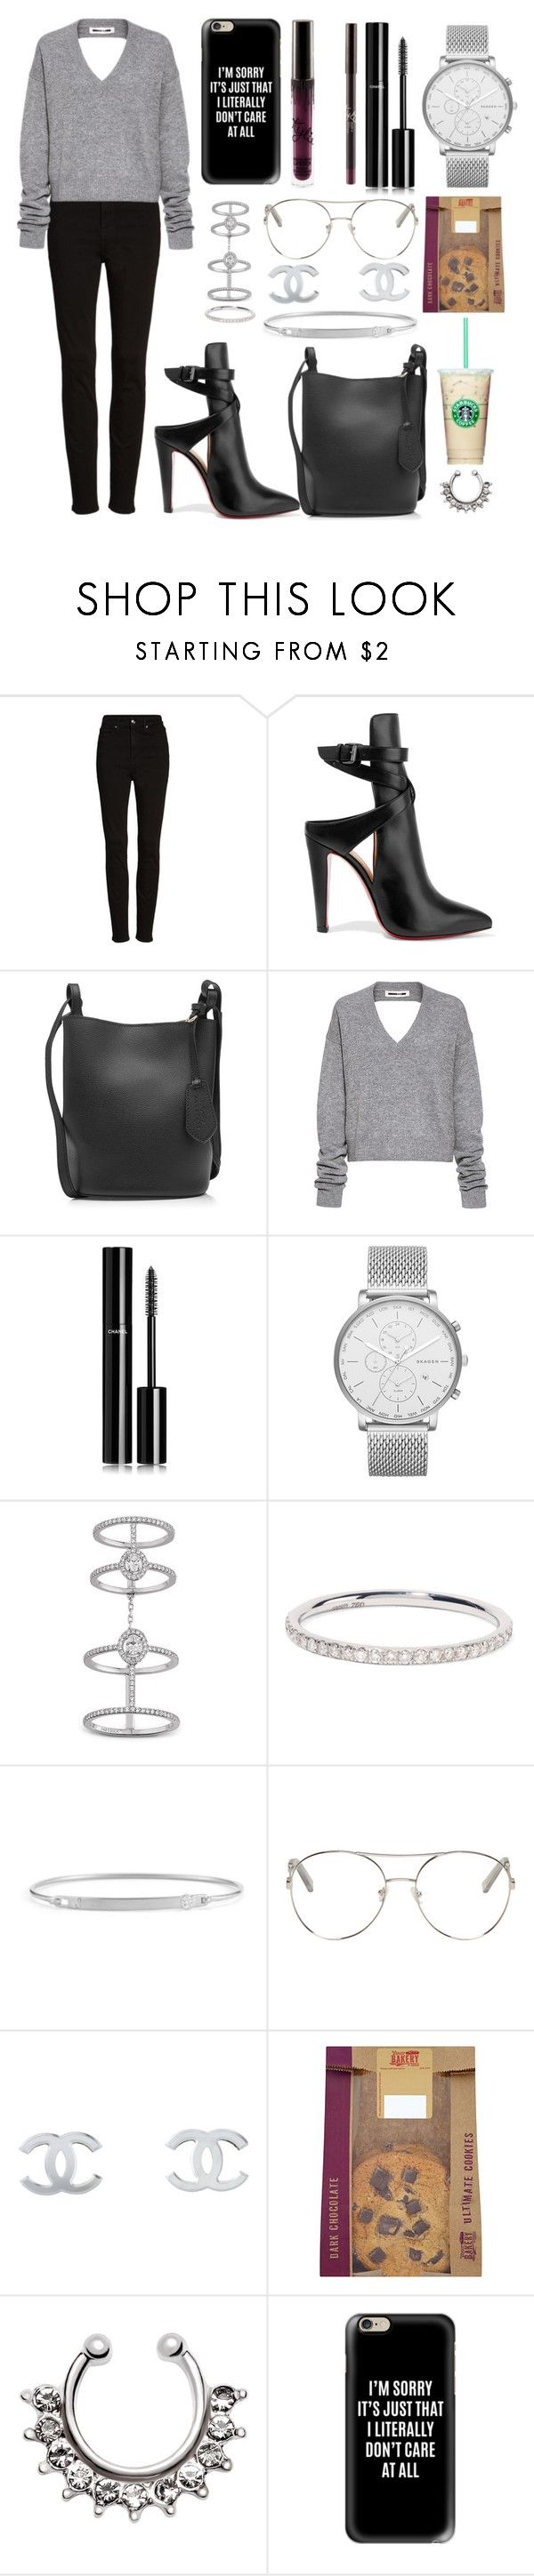 """Literally"" by letiziiacuschieri-i ❤ liked on Polyvore featuring Good American, Christian Louboutin, Burberry, McQ by Alexander McQueen, Chanel, Skagen, Messika, Ileana Makri, Forevermark and Chloé"